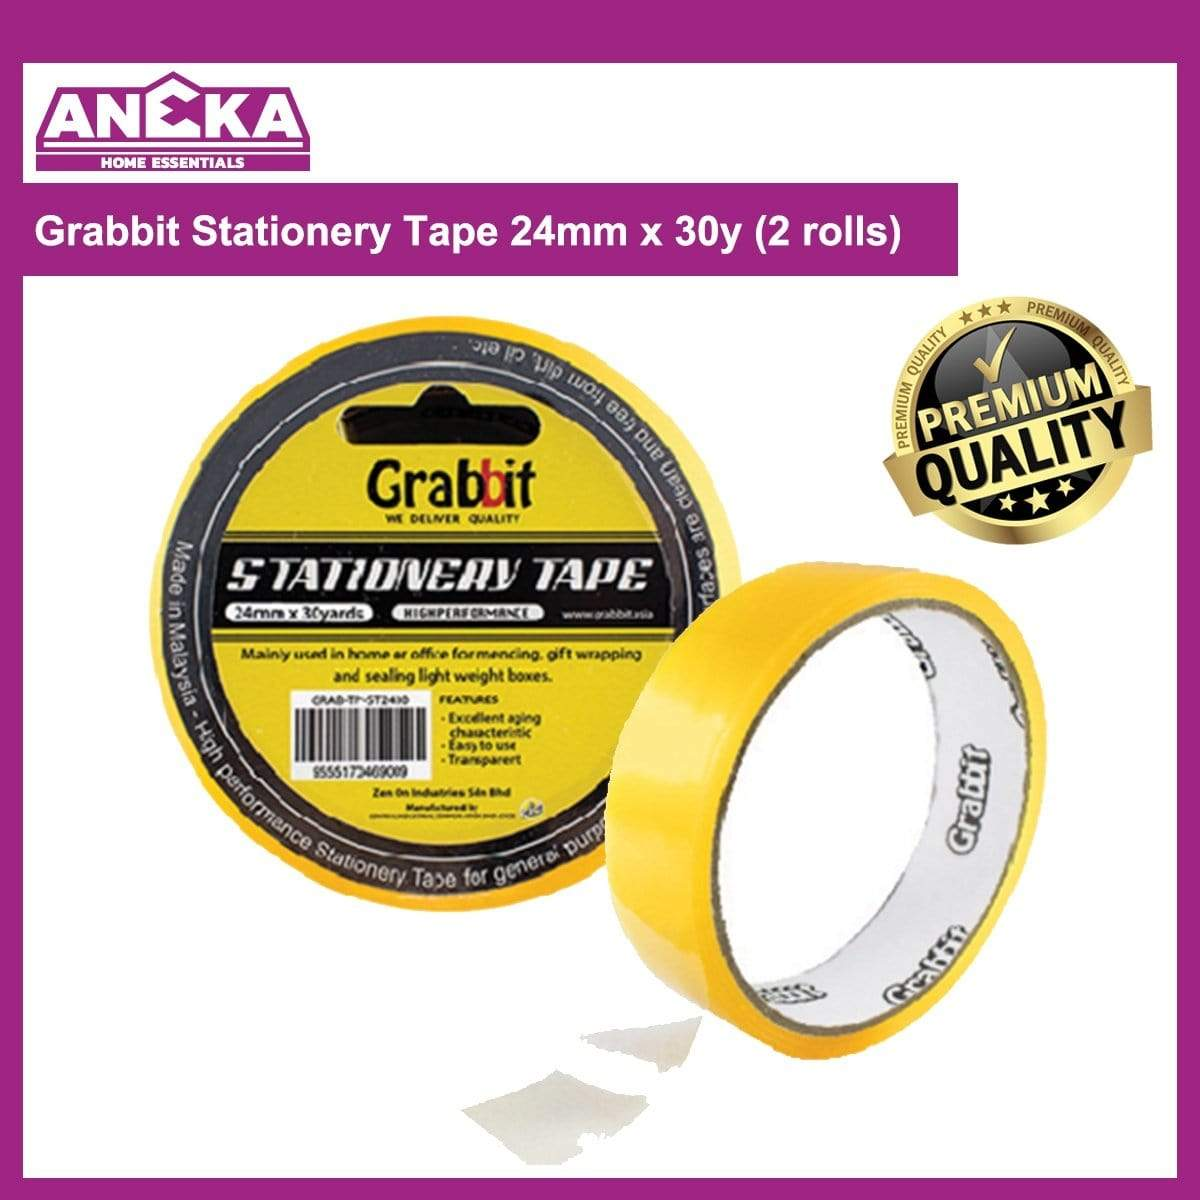 Grabbit Stationery Tape 24mm x 30y (2 rolls)